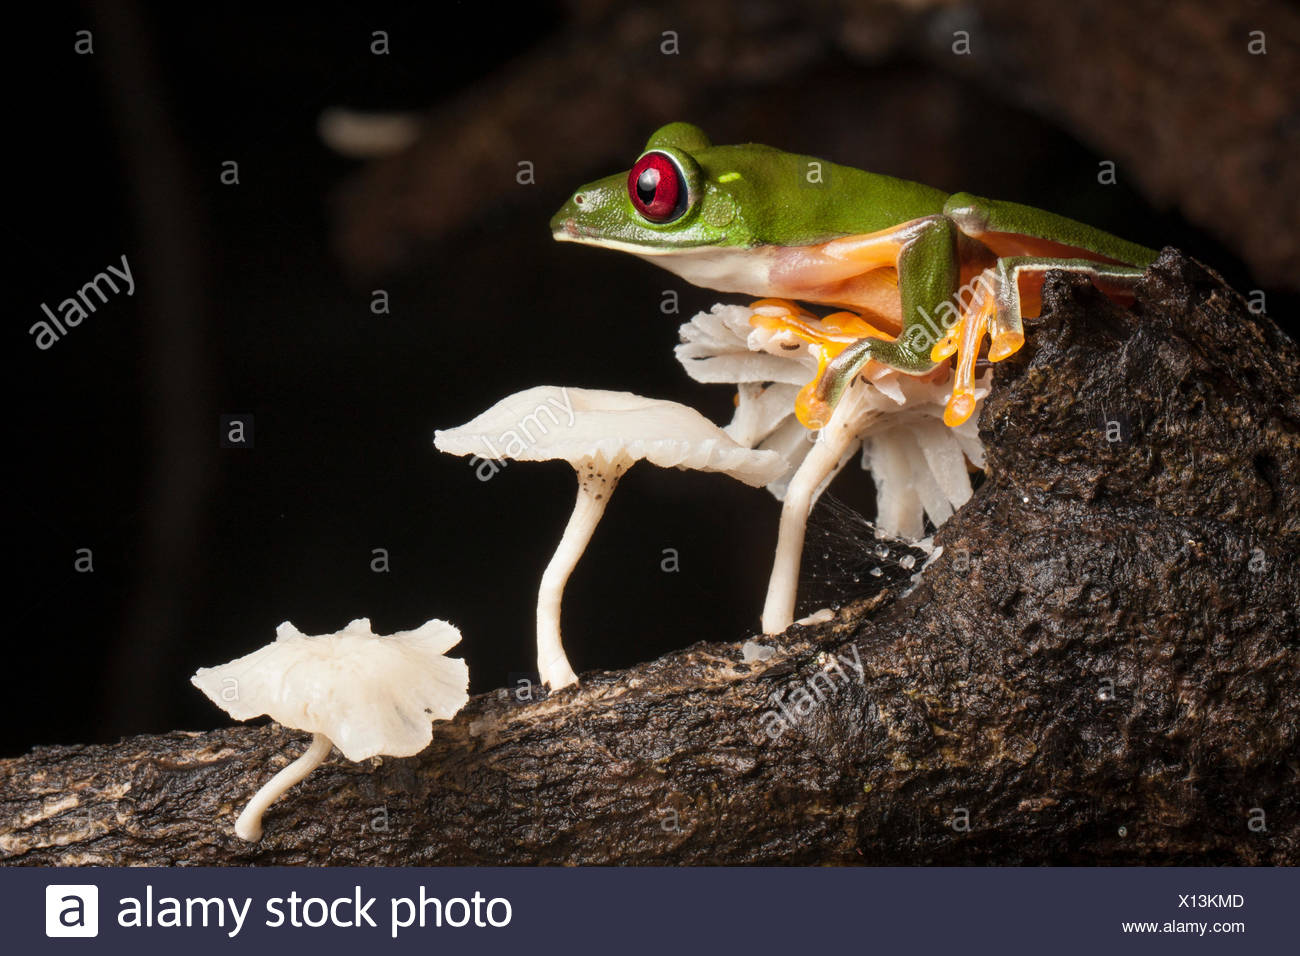 A gliding tree frog, Agalychnis spurrelli, with mushrooms. - Stock Image